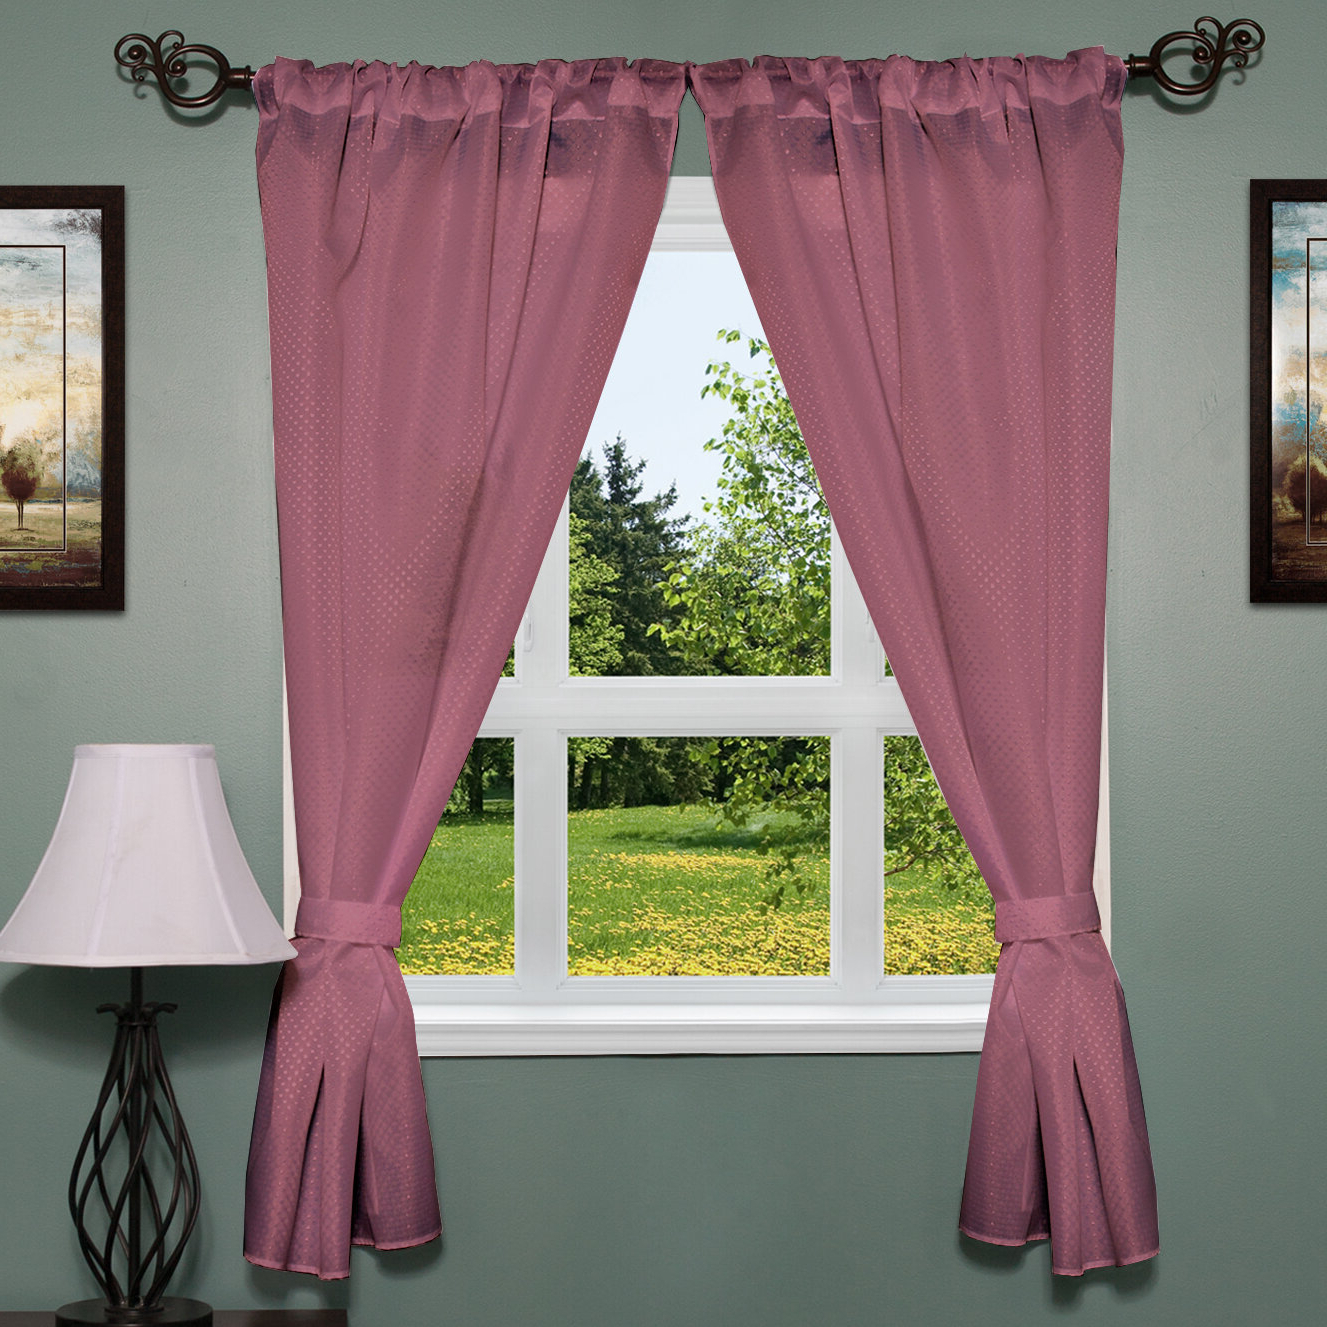 Newest Dallastown Elegant Subtle Fabric Curtain Panel Intended For Classic Hotel Quality Water Resistant Fabric Curtains Set With Tiebacks (View 15 of 20)